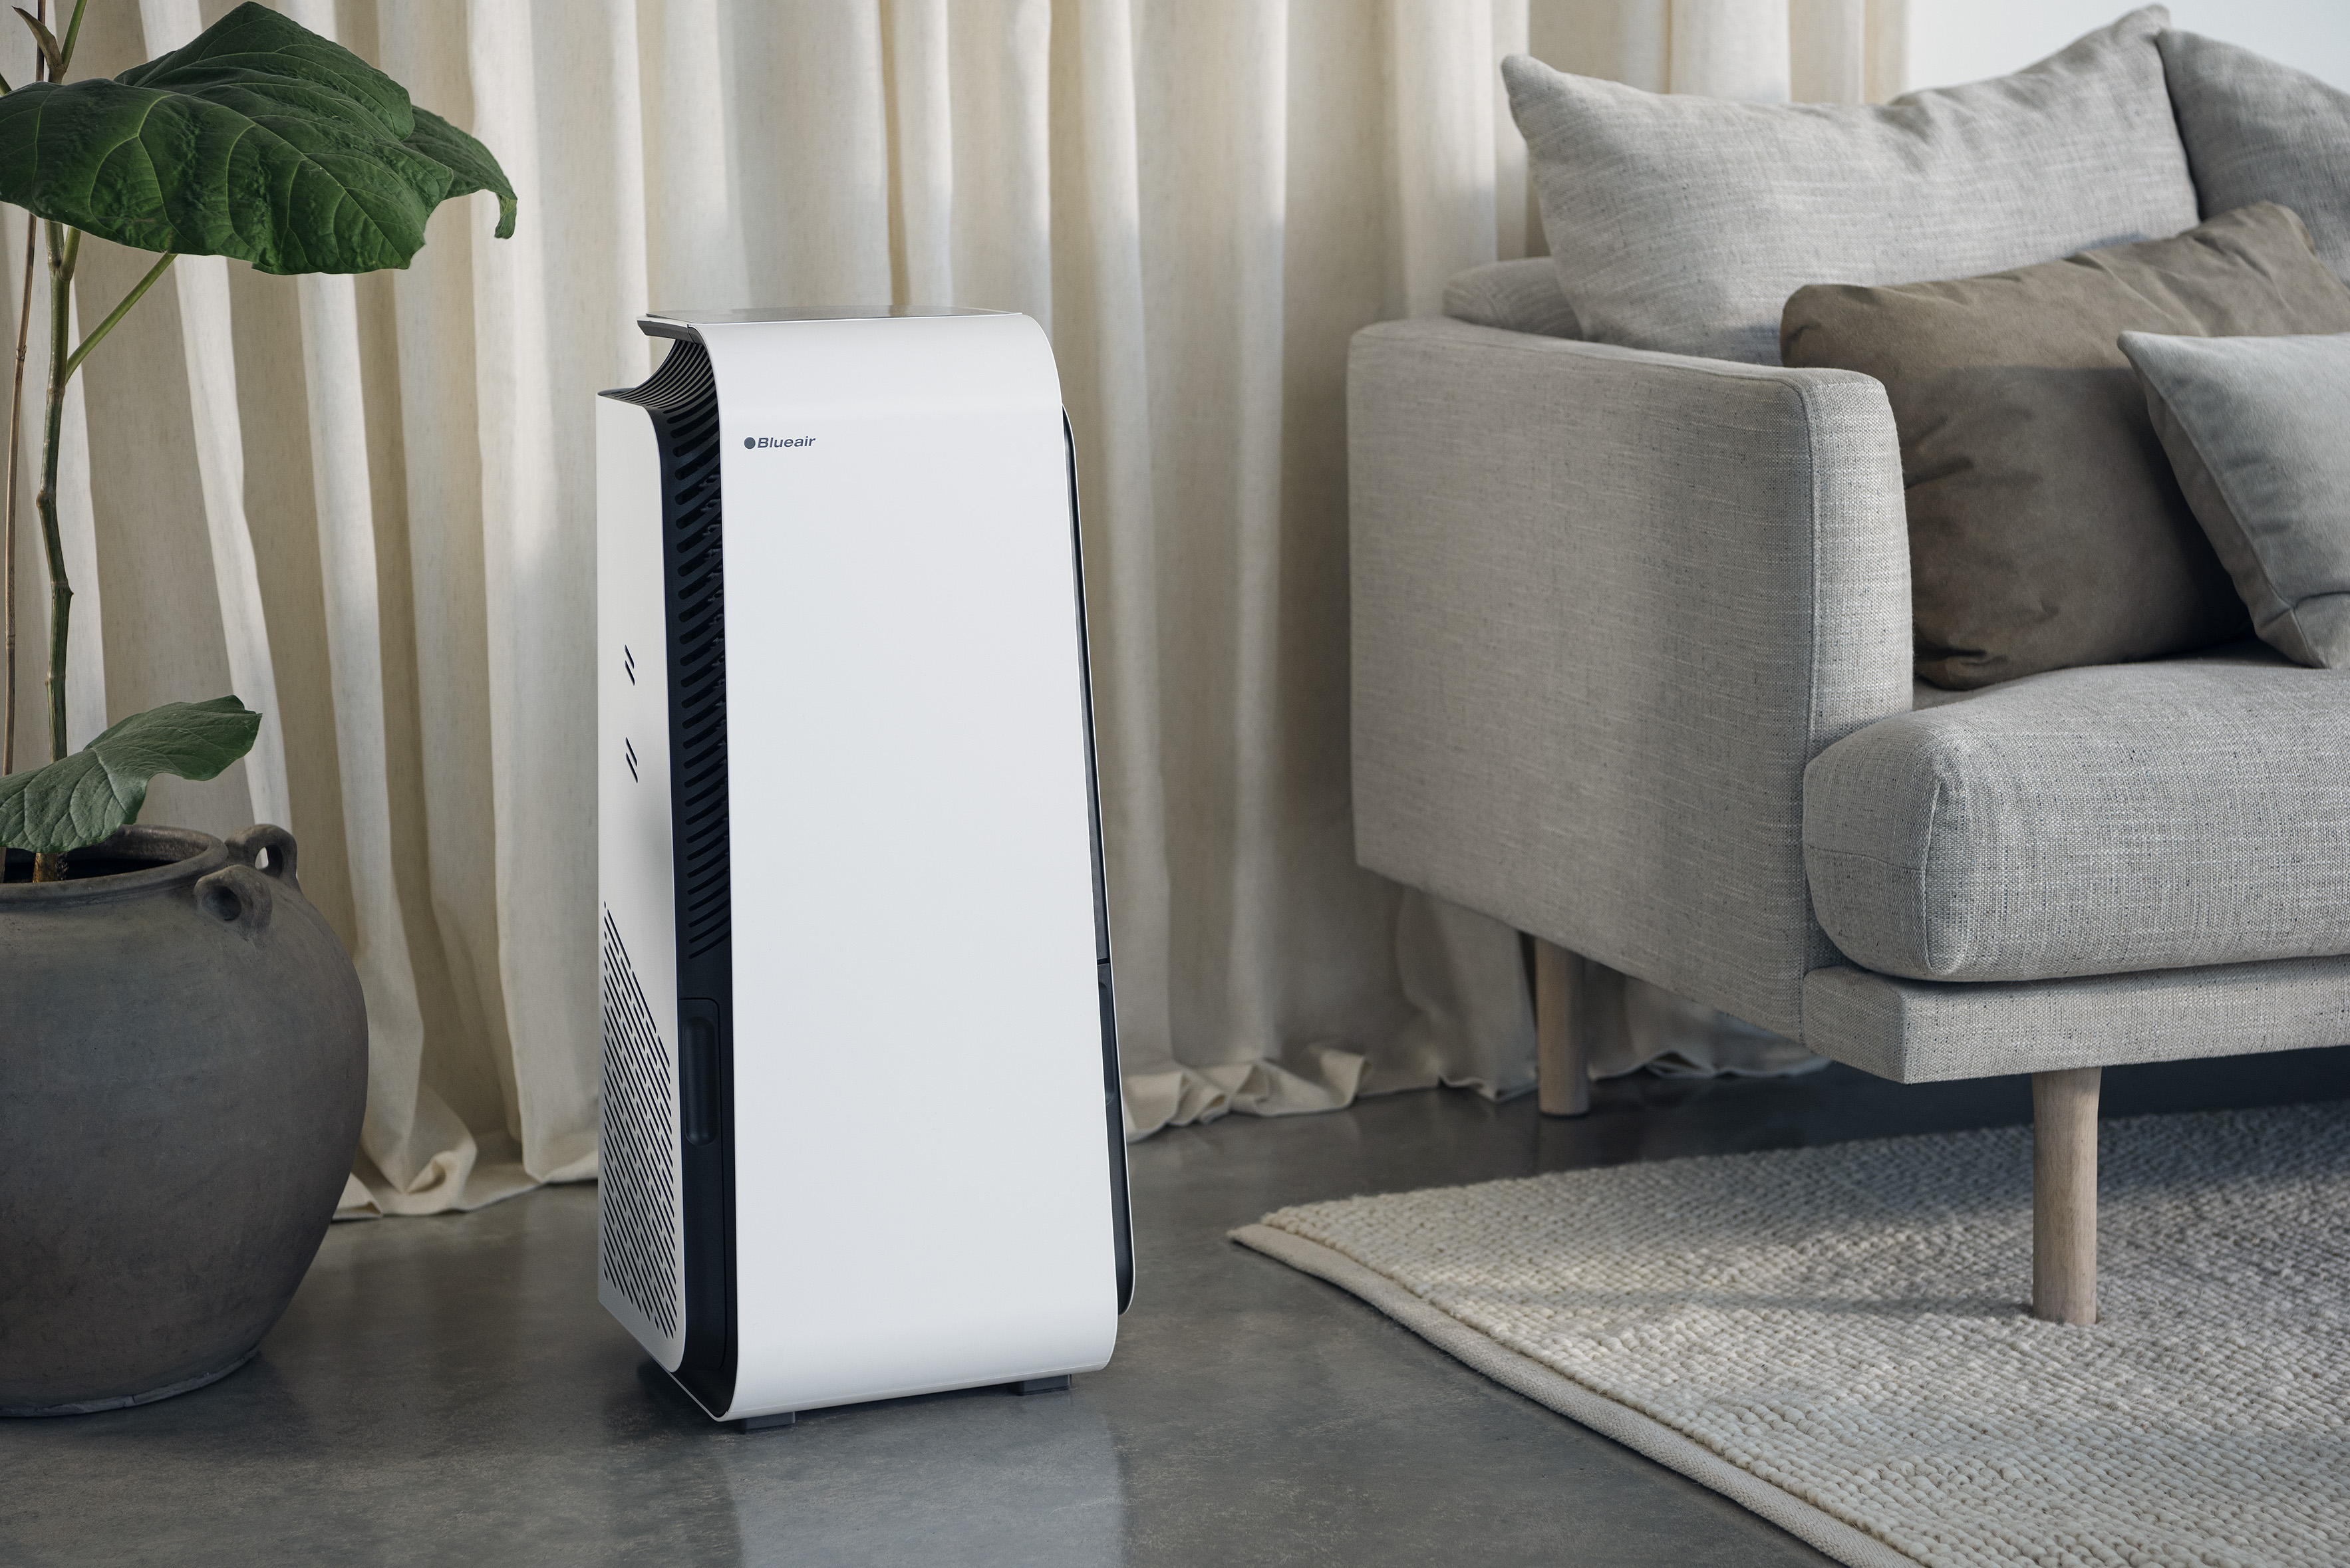 Blueairs HealthProtect™ air purifier tested to remove live SARS-CoV-2 Virus from the air now protecting Singapore